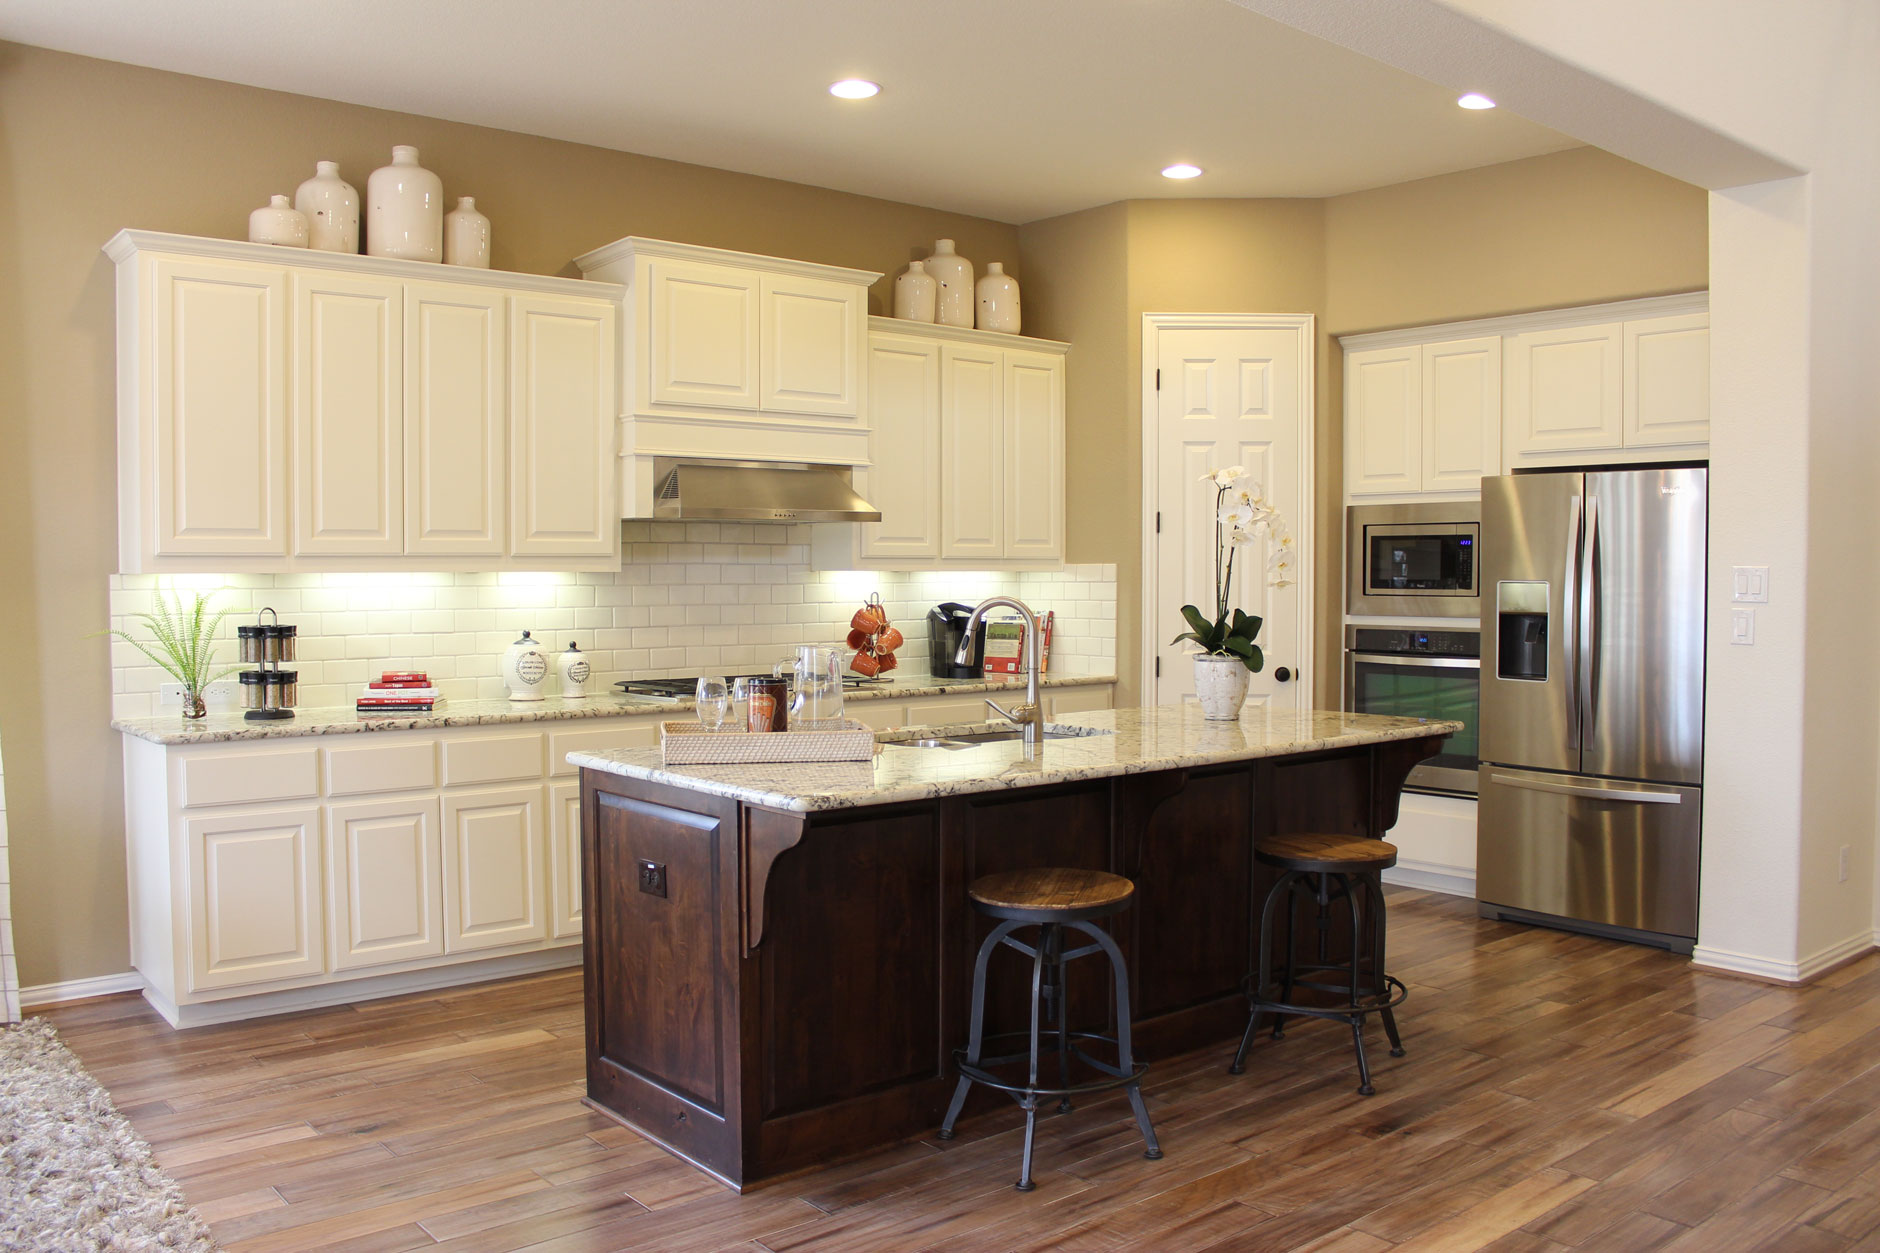 Kitchen Cabinet Colors 2012 Choose Flooring That Complements Cabinet Color Burrows Cabinets